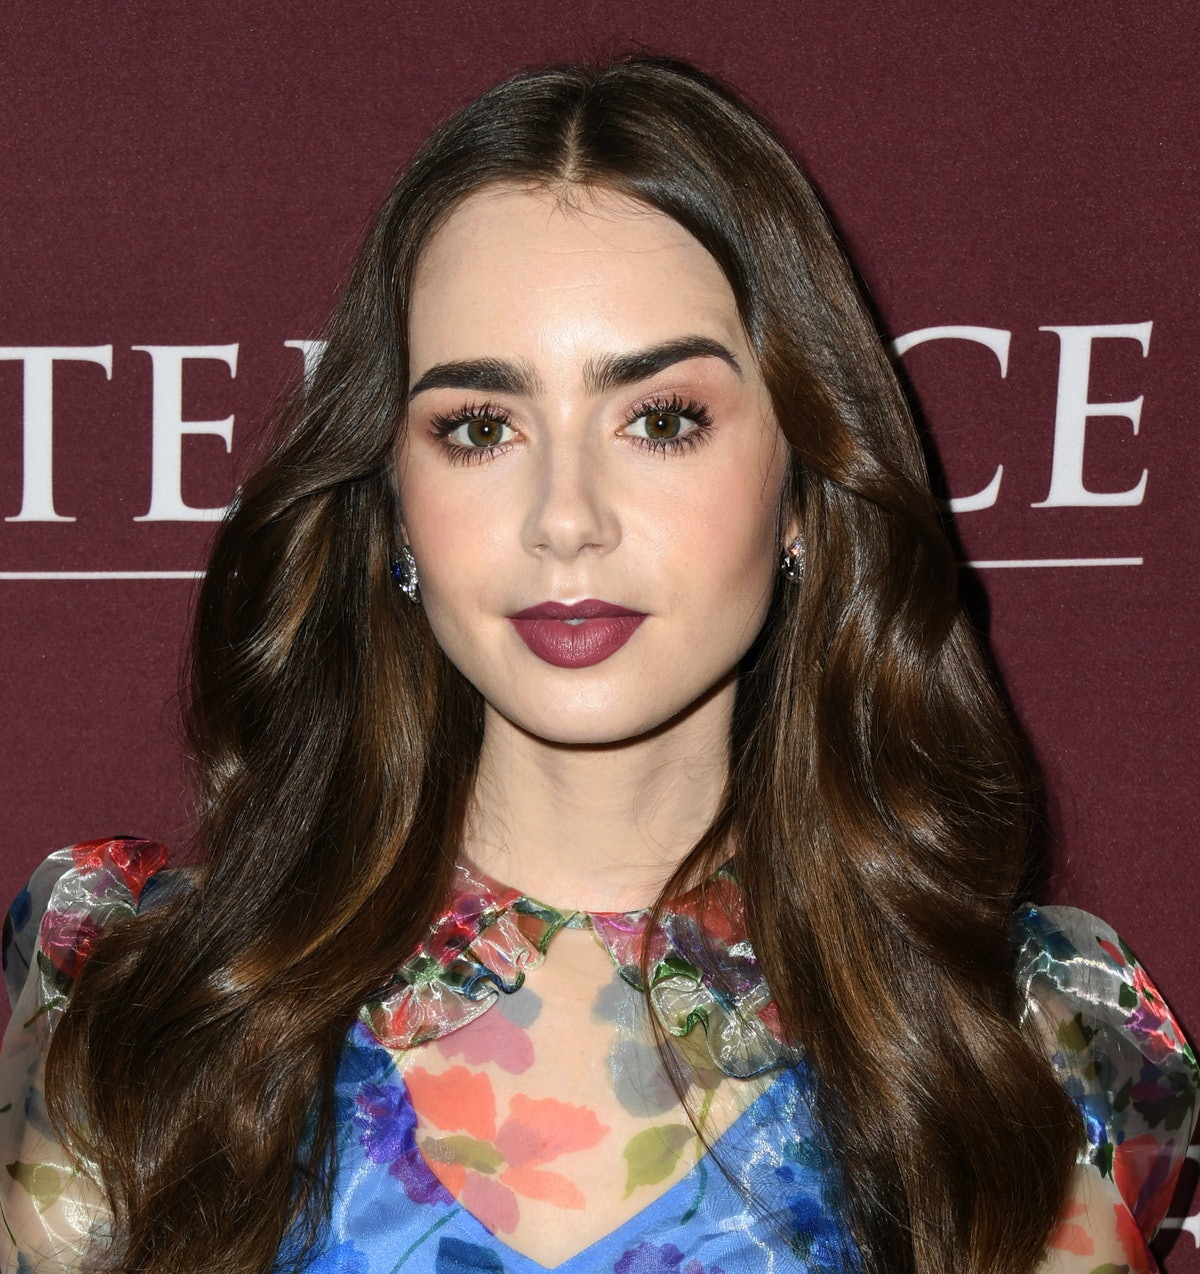 Lily Collins will play Polly Pocket in a live-action movie from Lena Dunham.